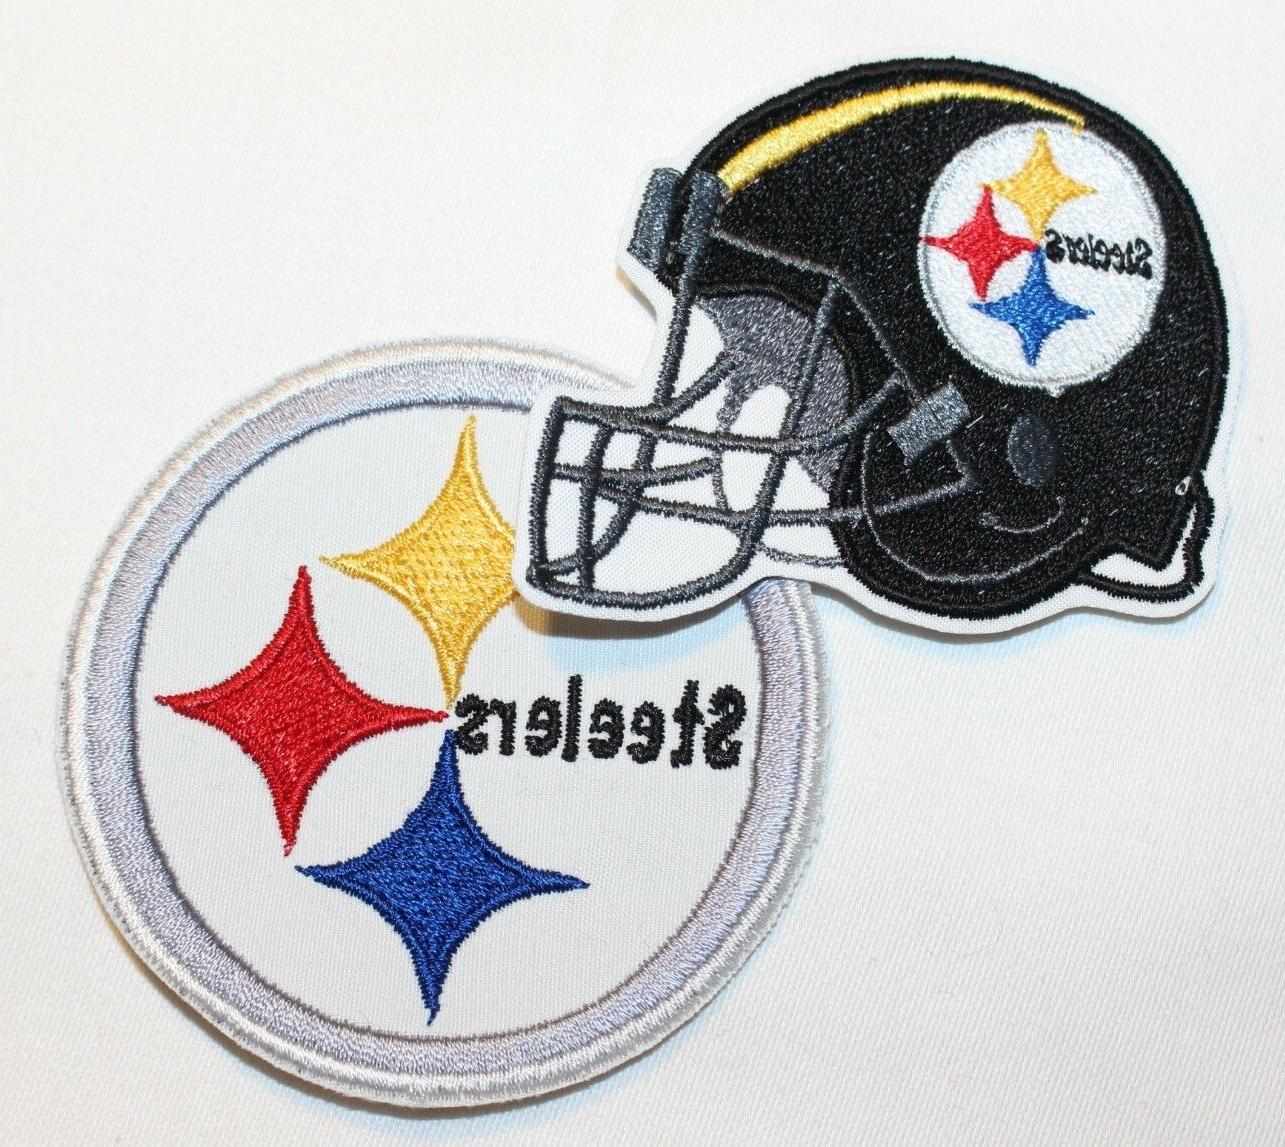 nfl pittsburgh steelers embroidered iron on patch